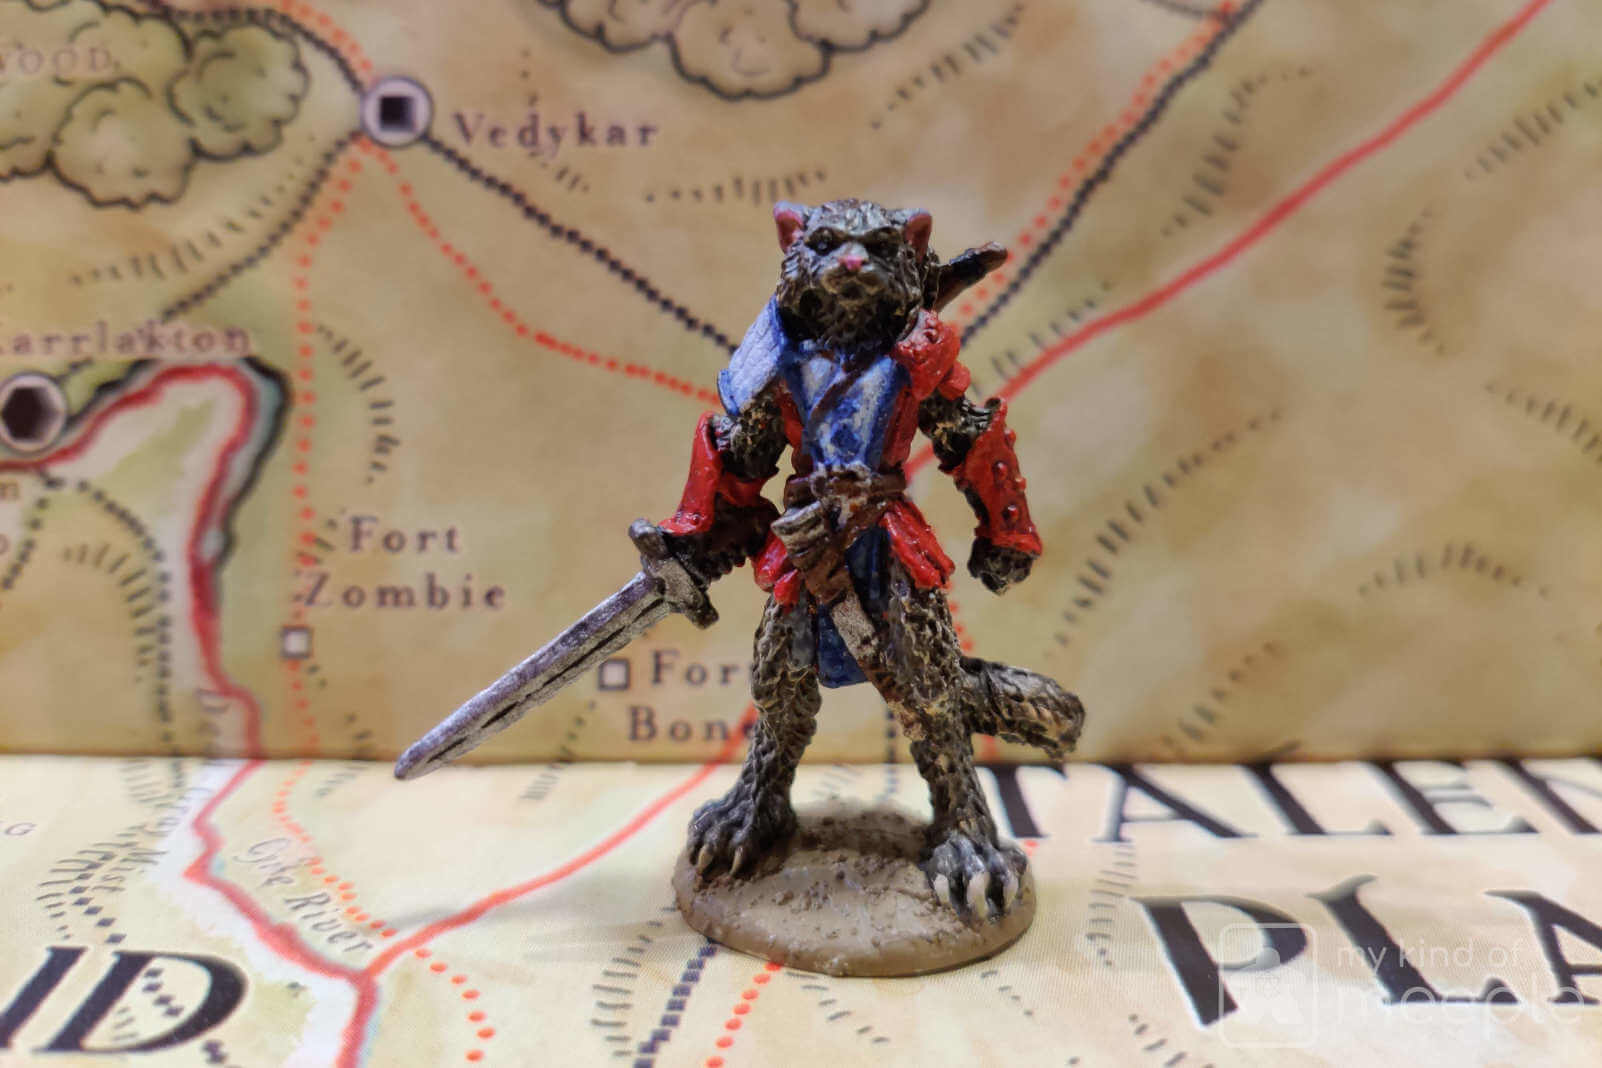 Neutrasl Good alignment tabaxi miniature